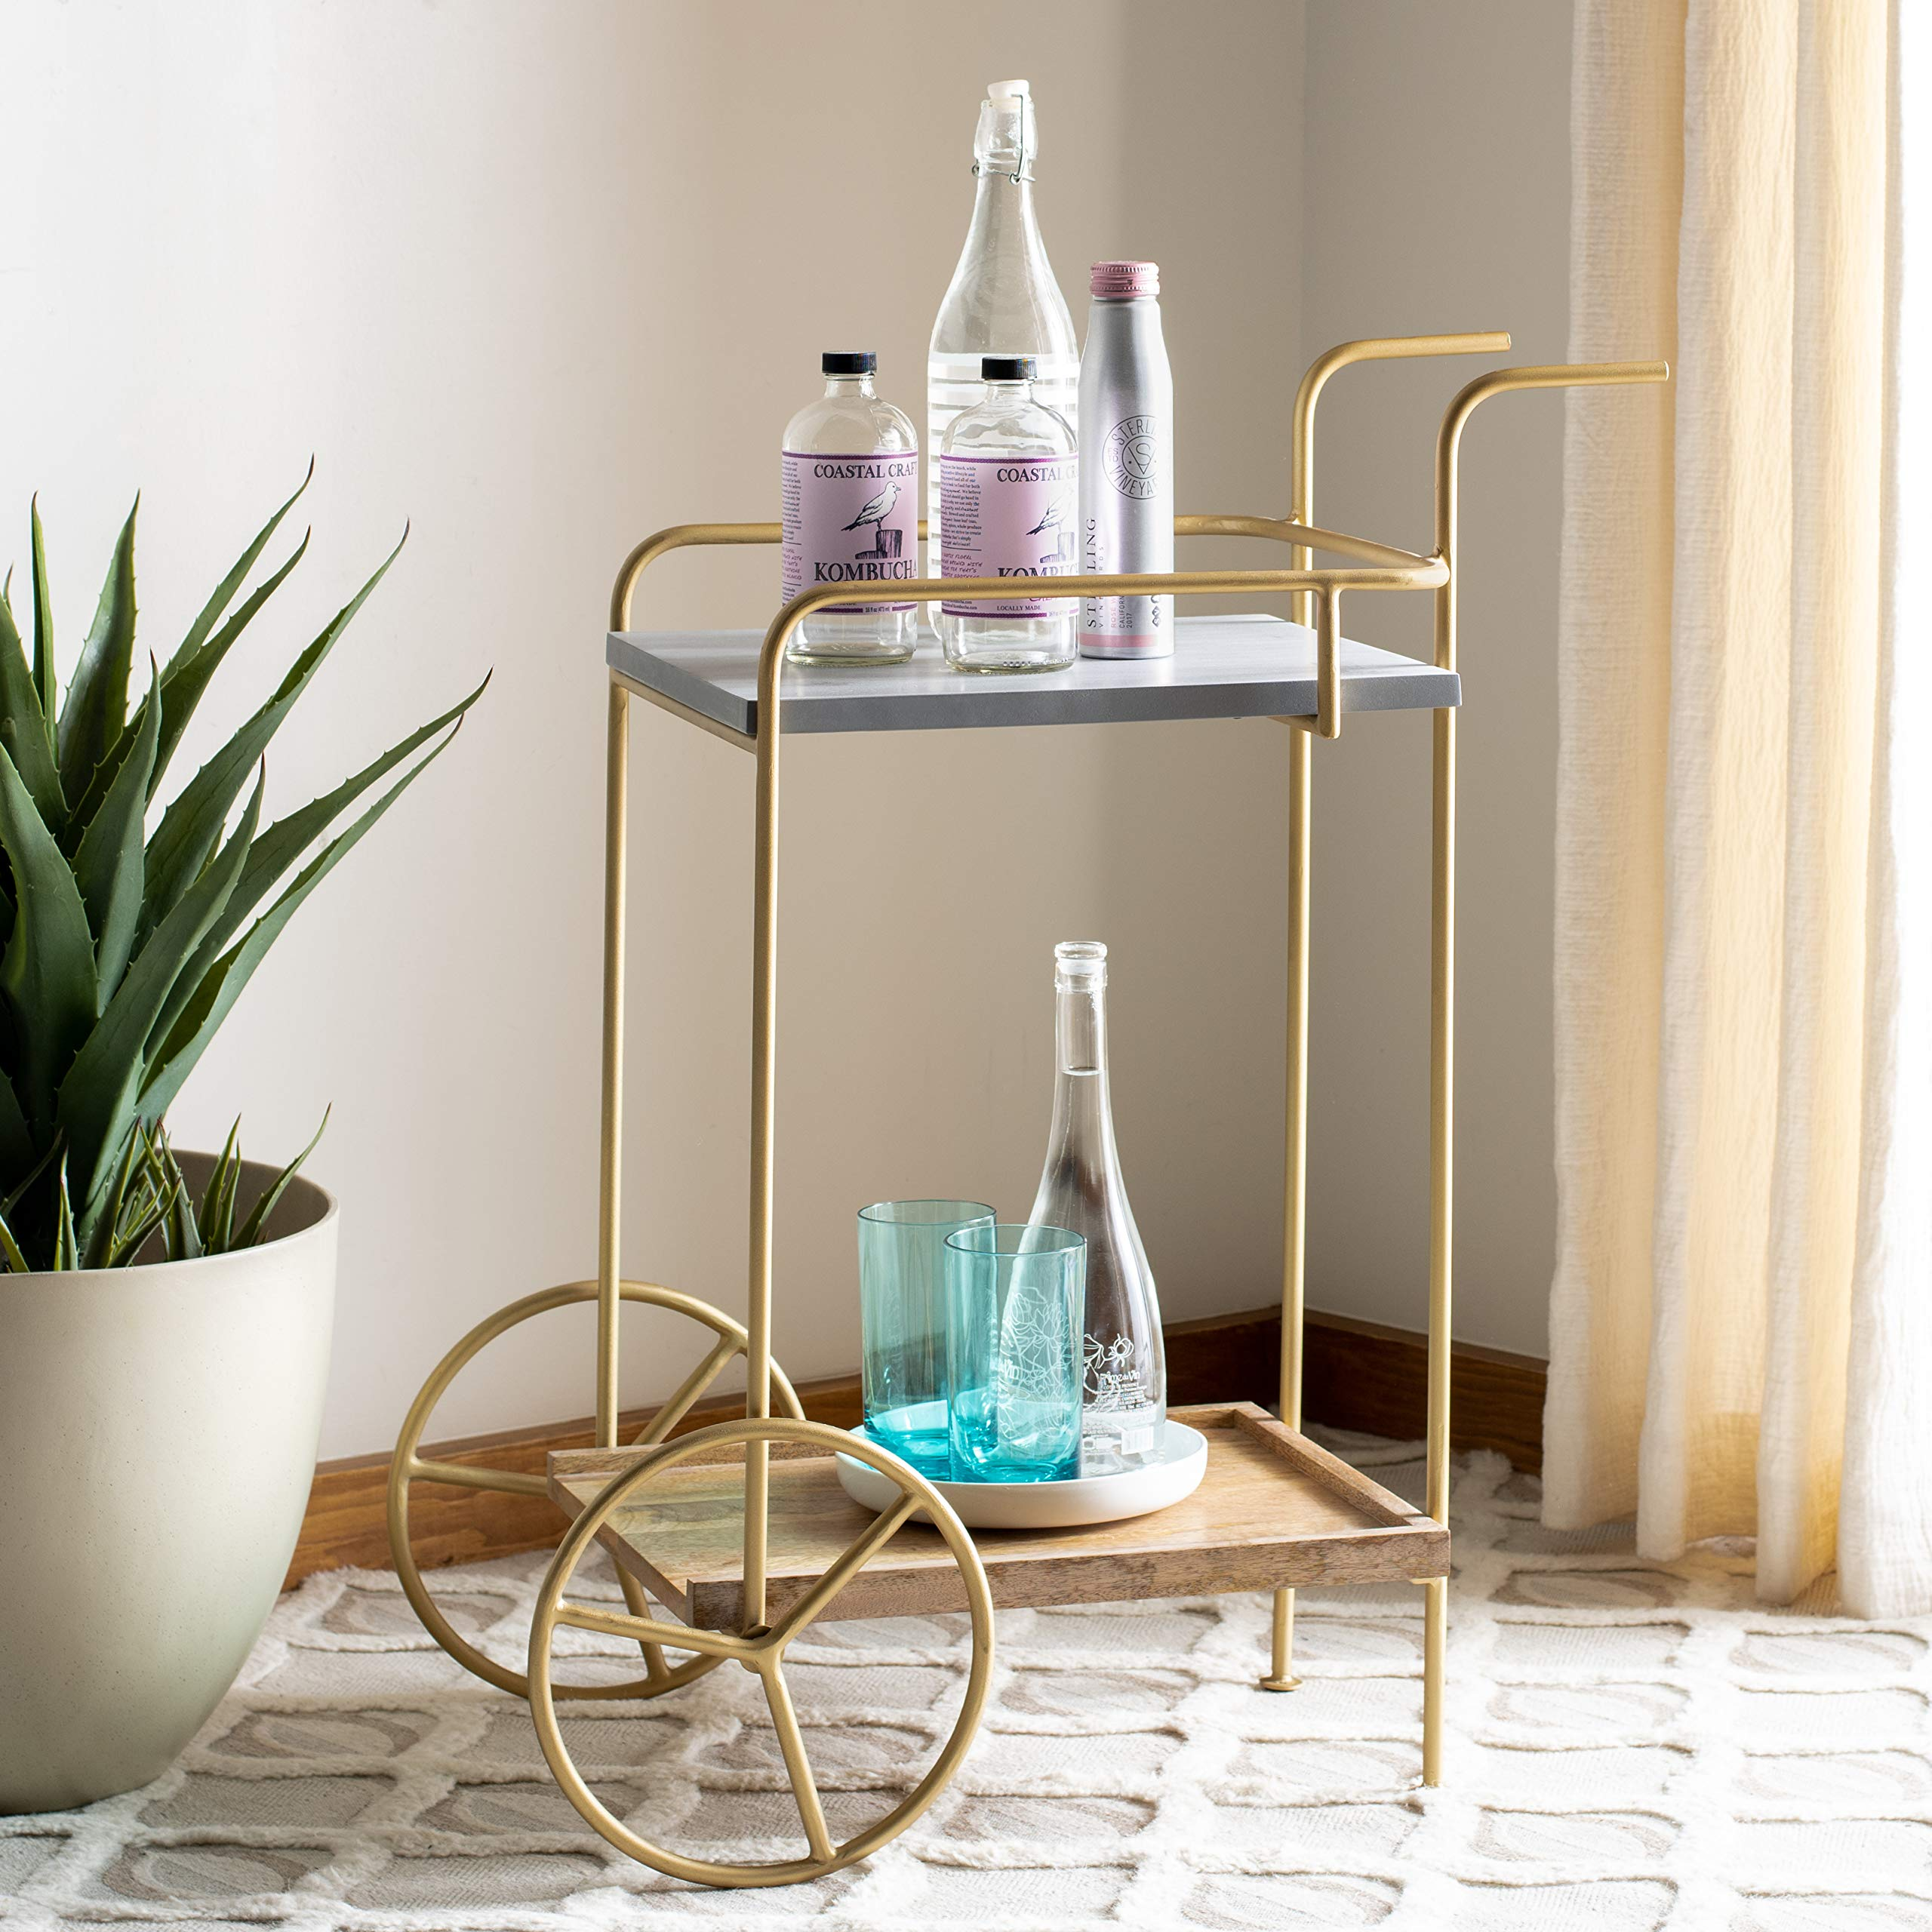 Safavieh Home Collection Harper 2-tier Natural Wheels Bar Cart by Safavieh